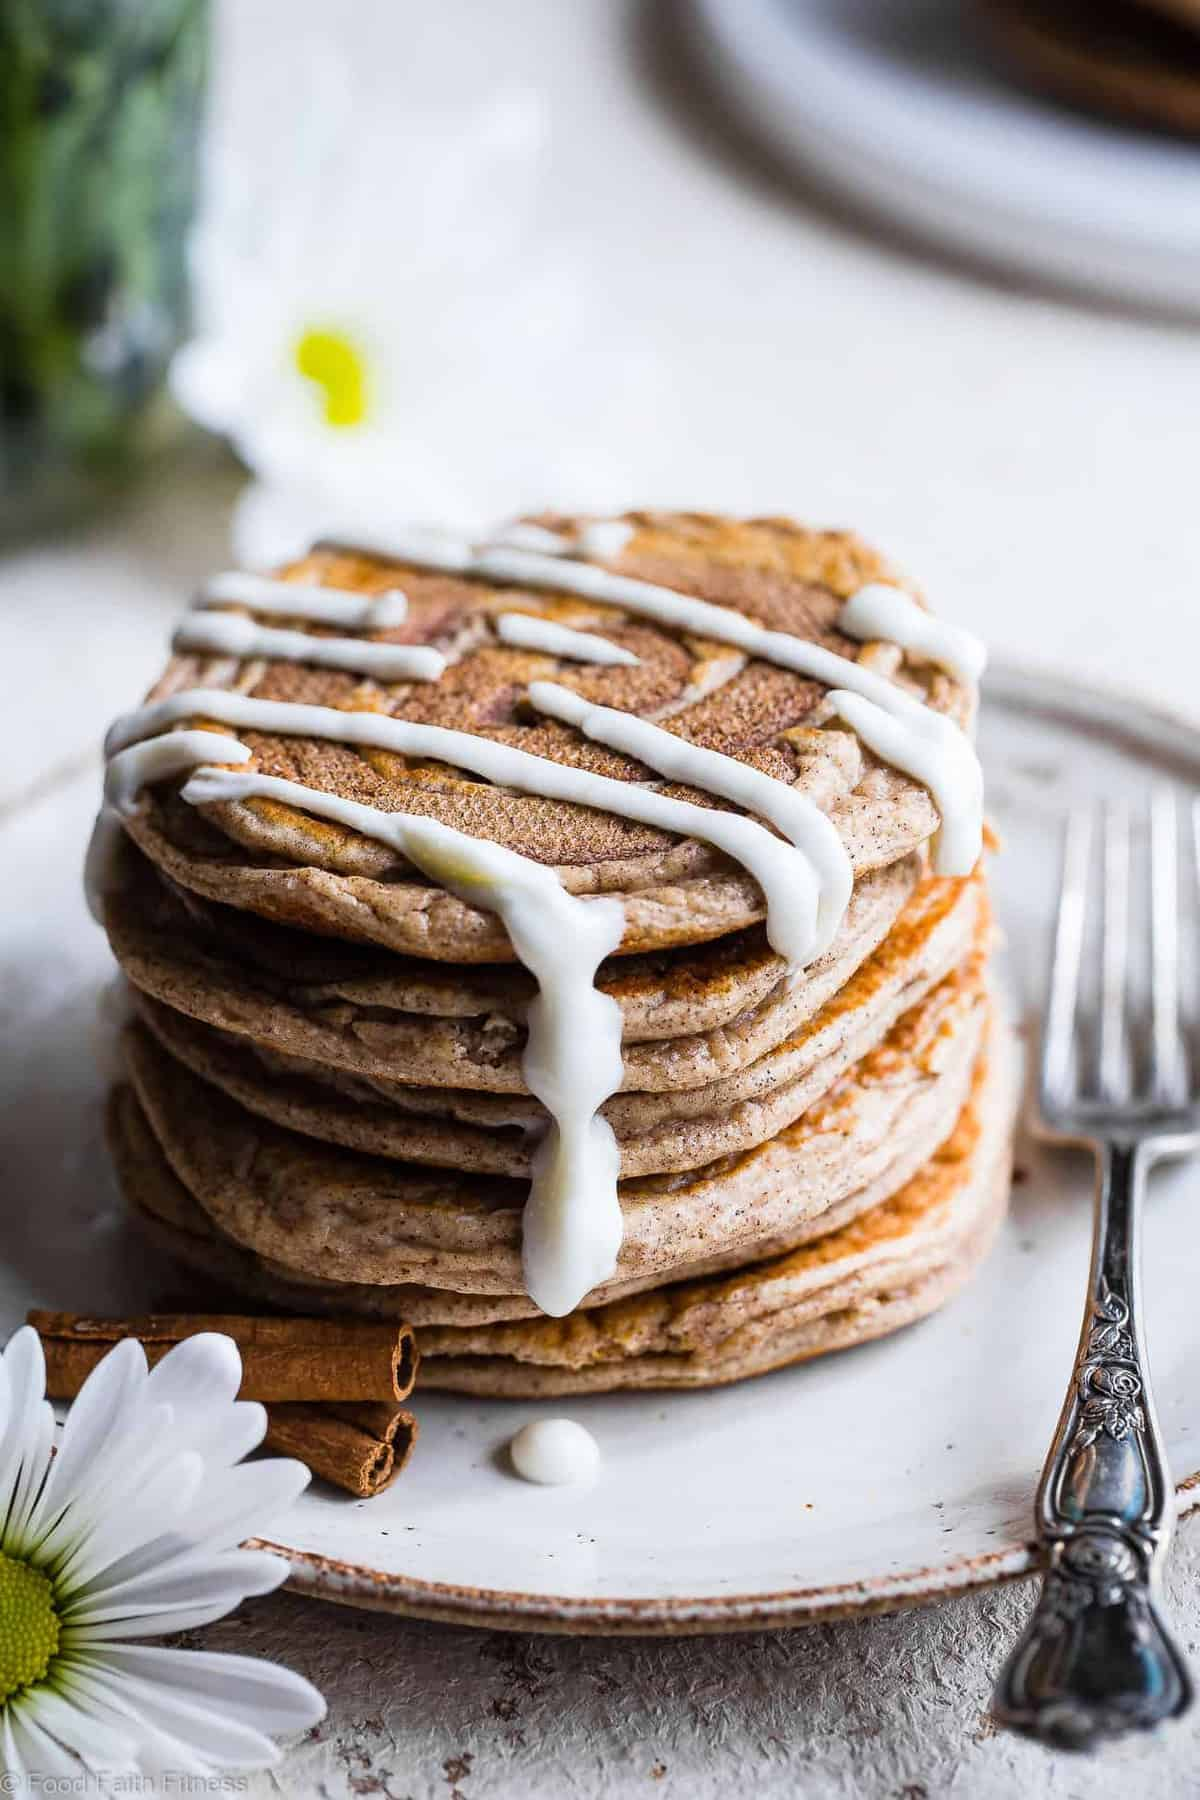 Easy Cinnamon Roll Gluten Free Low Carb Keto Protein Pancakes - This low carb pancake recipe is going to be your new favorite breakfast! Great for kids and adults and packed with 23g of protein! Who doesn't want to wake up to healthy cinnamon rolls?! | #Foodfaithfitness | #Keto #Lowcarb #Glutenfree #Healthy #Pancakes